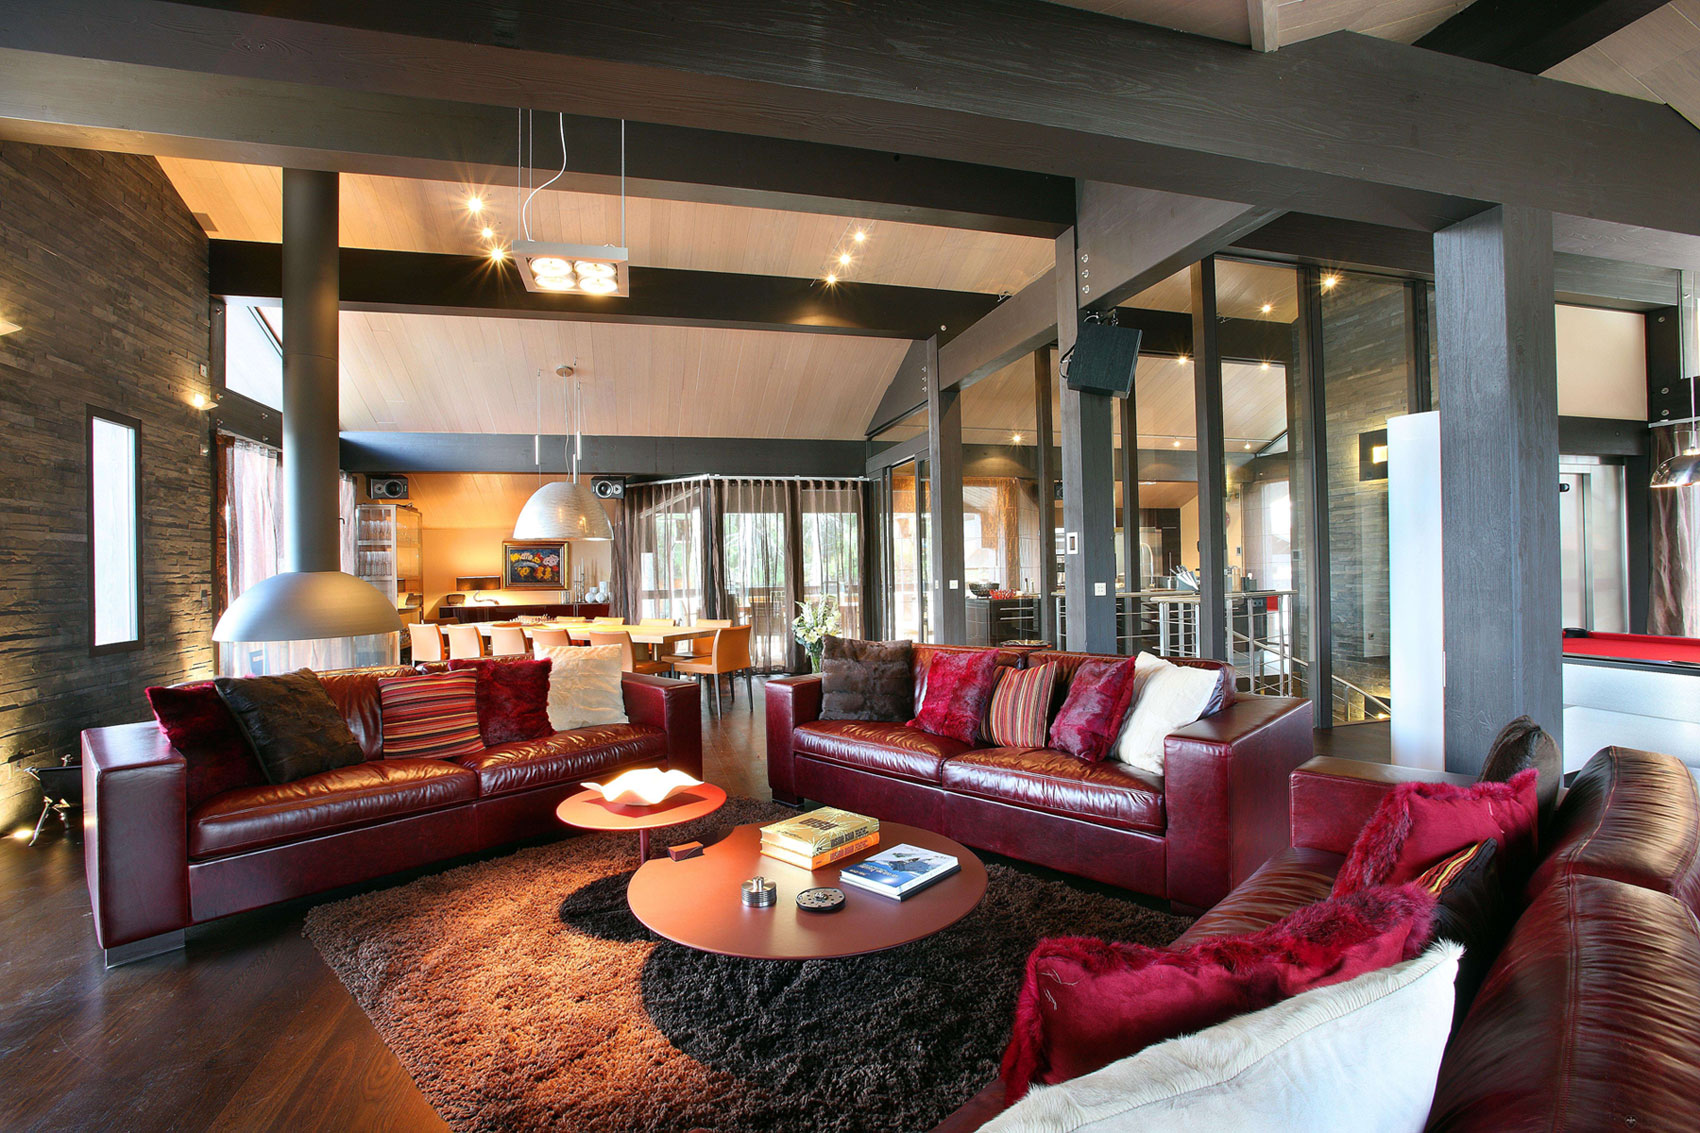 Chalet E 1850 in Courchevel, French Alps (4)